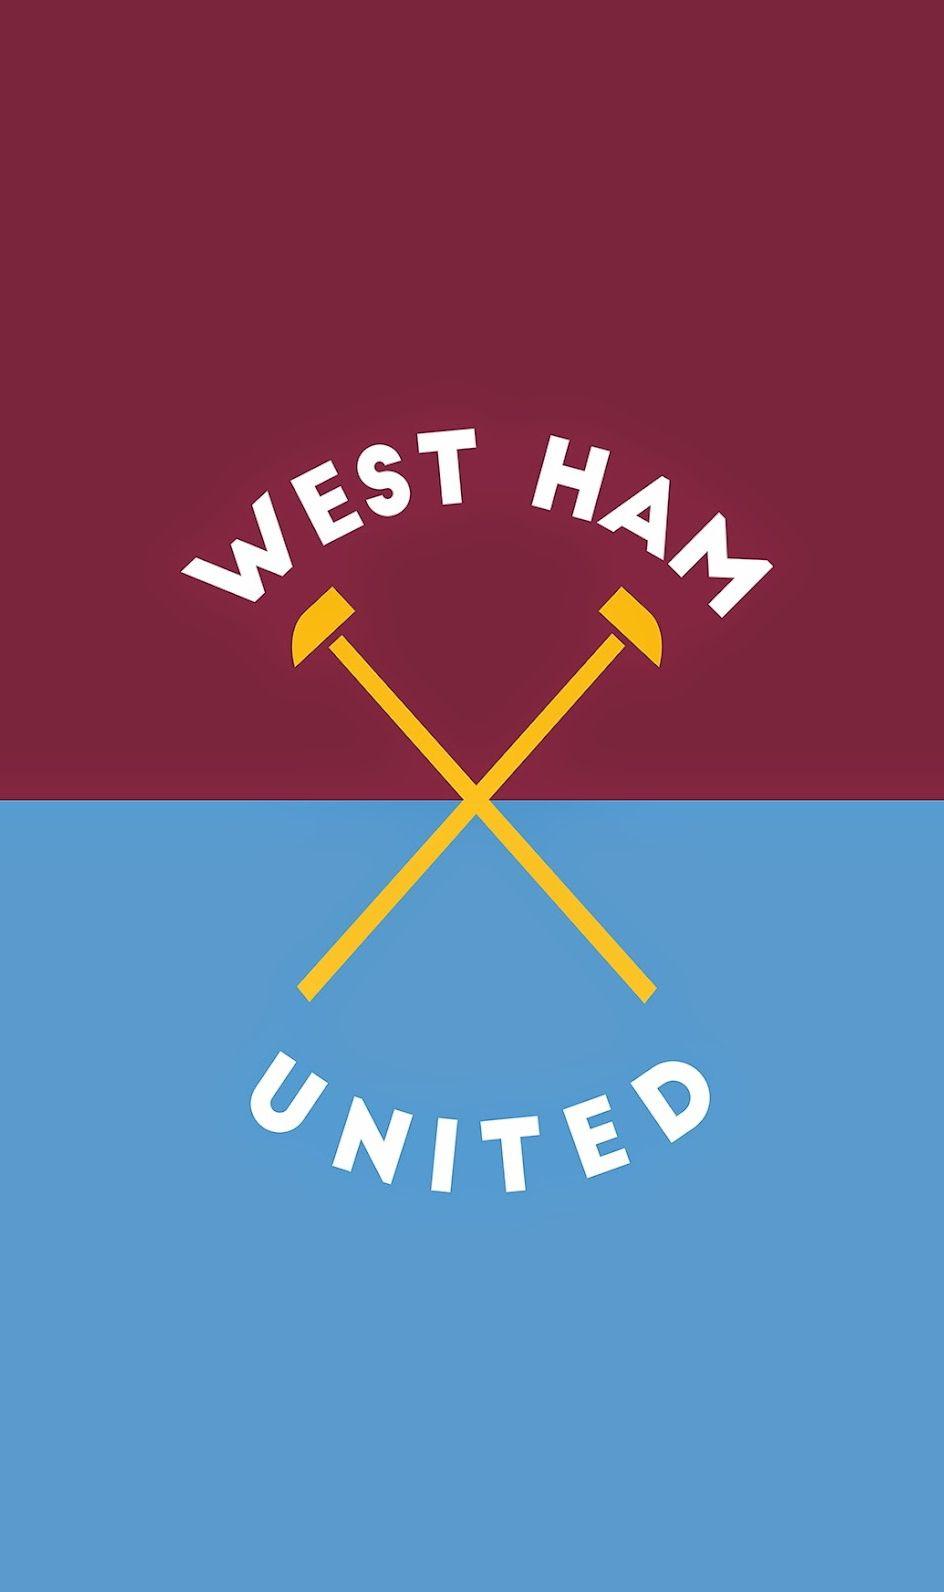 Pin By Ardyto Gumilang On West Ham Wallpapers West Ham Wallpaper West Ham Fans West Ham